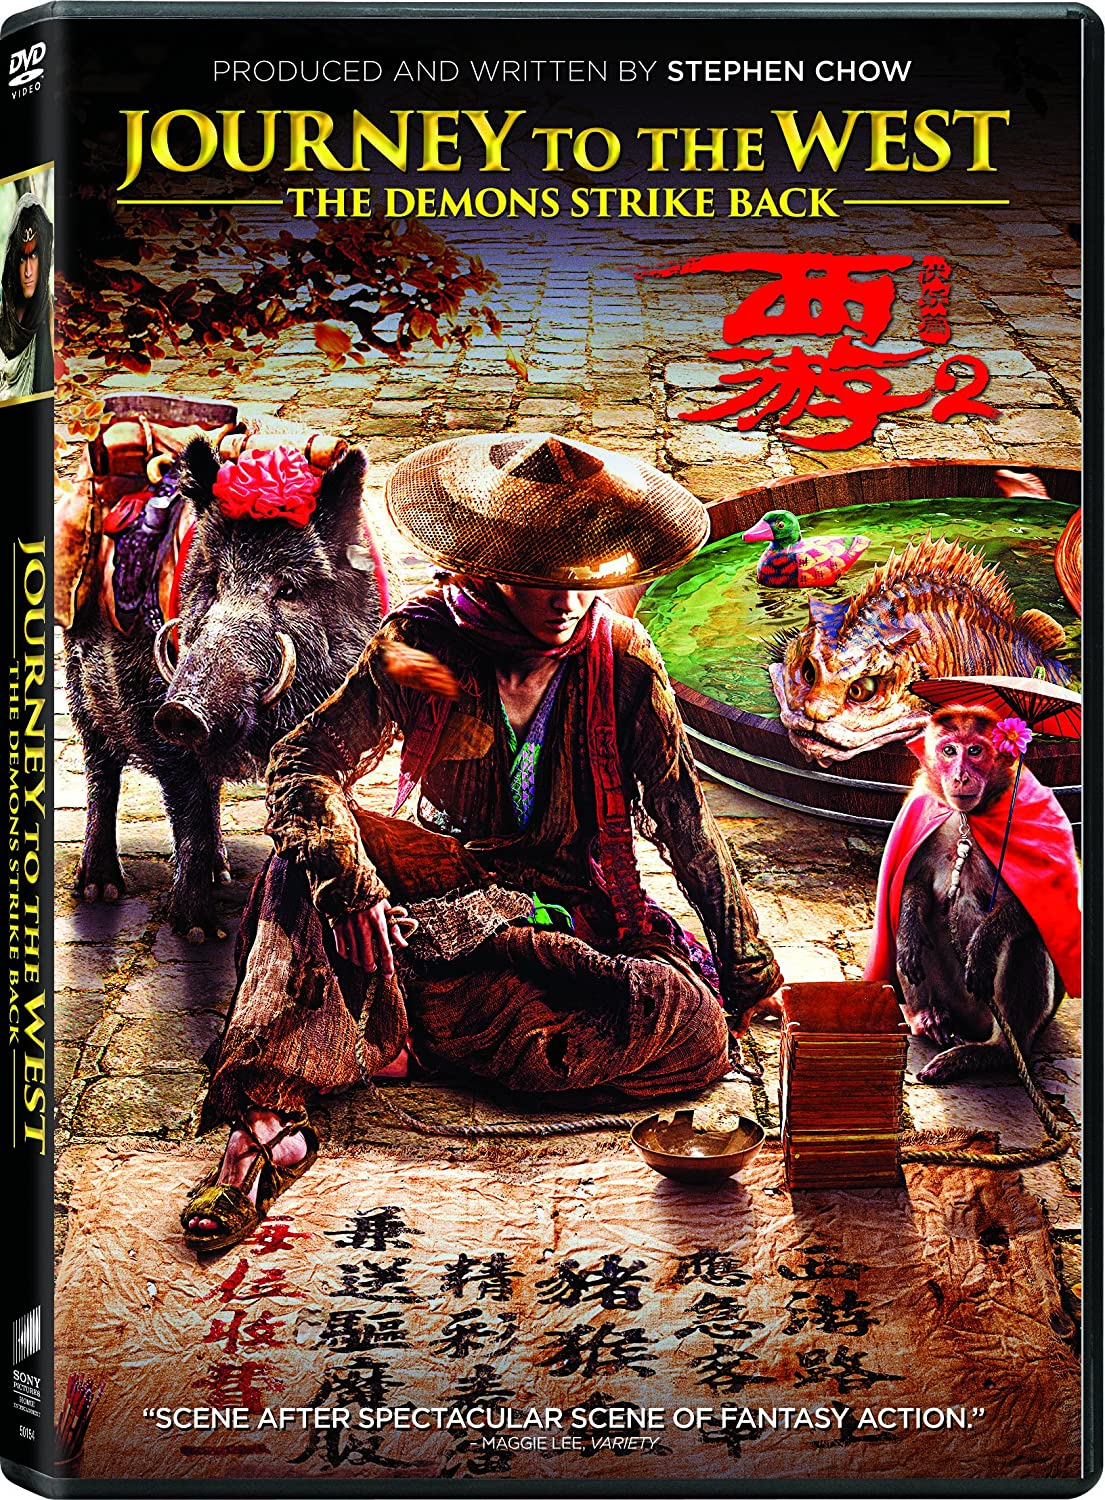 Journey to the West: The Demons Strike Back USA DVD: Amazon.es: Bei-Er Bao, Mengke Bateer, Kenny Lin, Yun Lin, Duo Wang, Likun Wang, Kris Wu, Yiwei Yang, ...